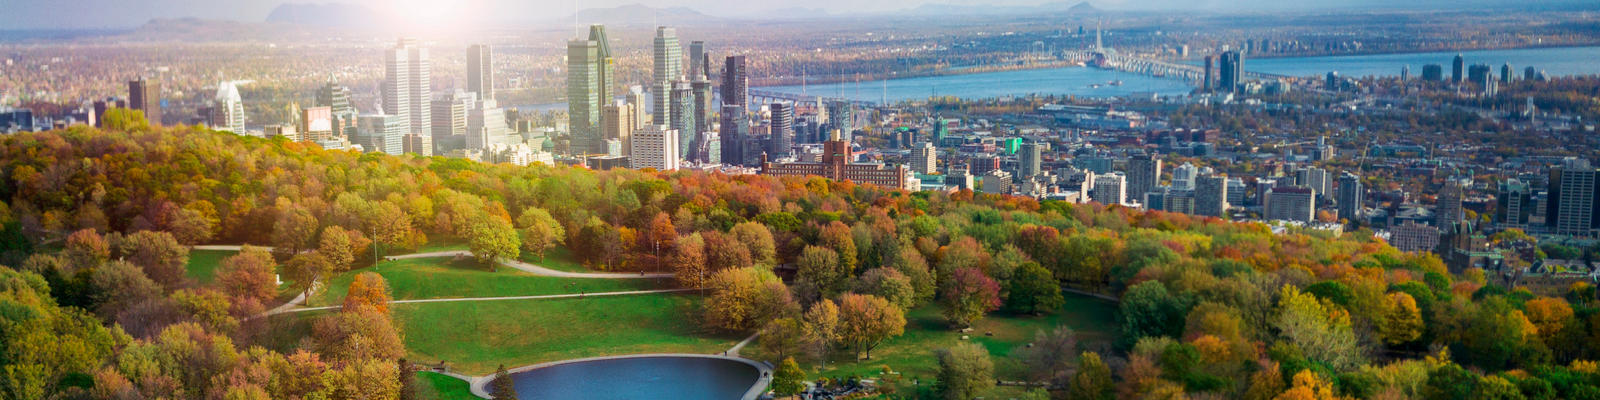 Montreal in the Fall (Photo: mat277/Shutterstock)